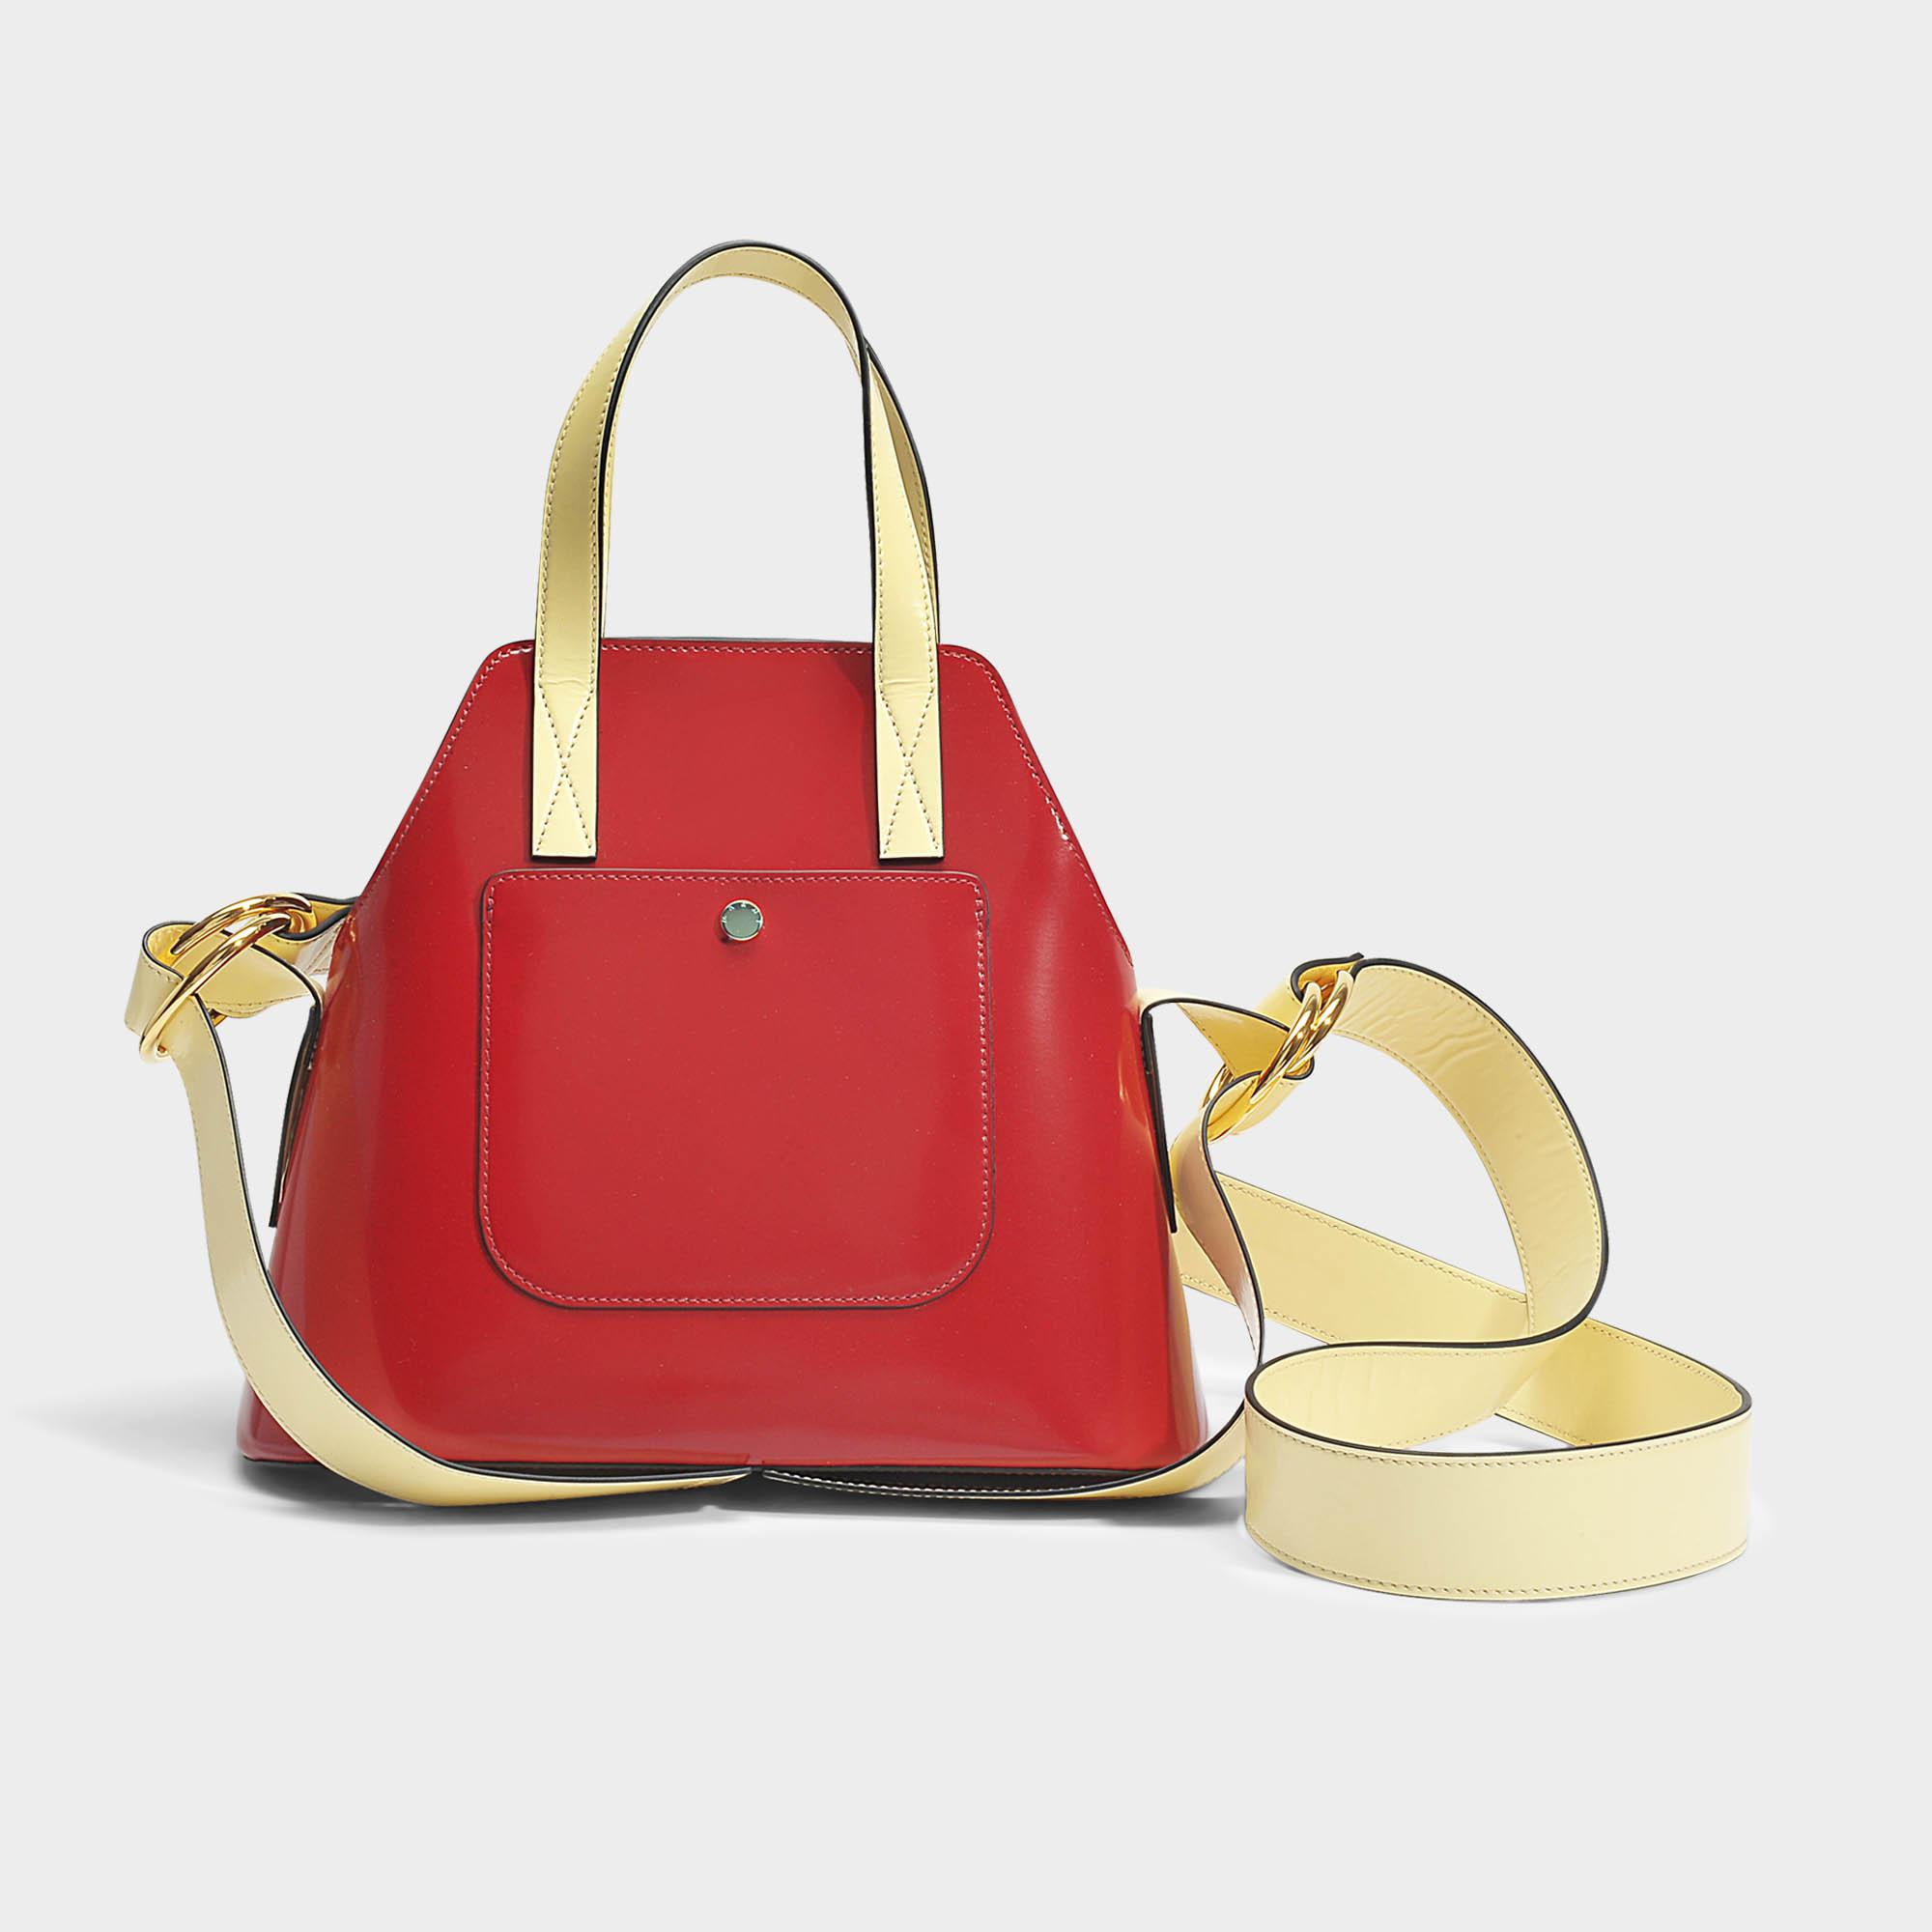 Small shopping Bag in Indian Red and Citron Domesticated Calf Marni w6BJXH